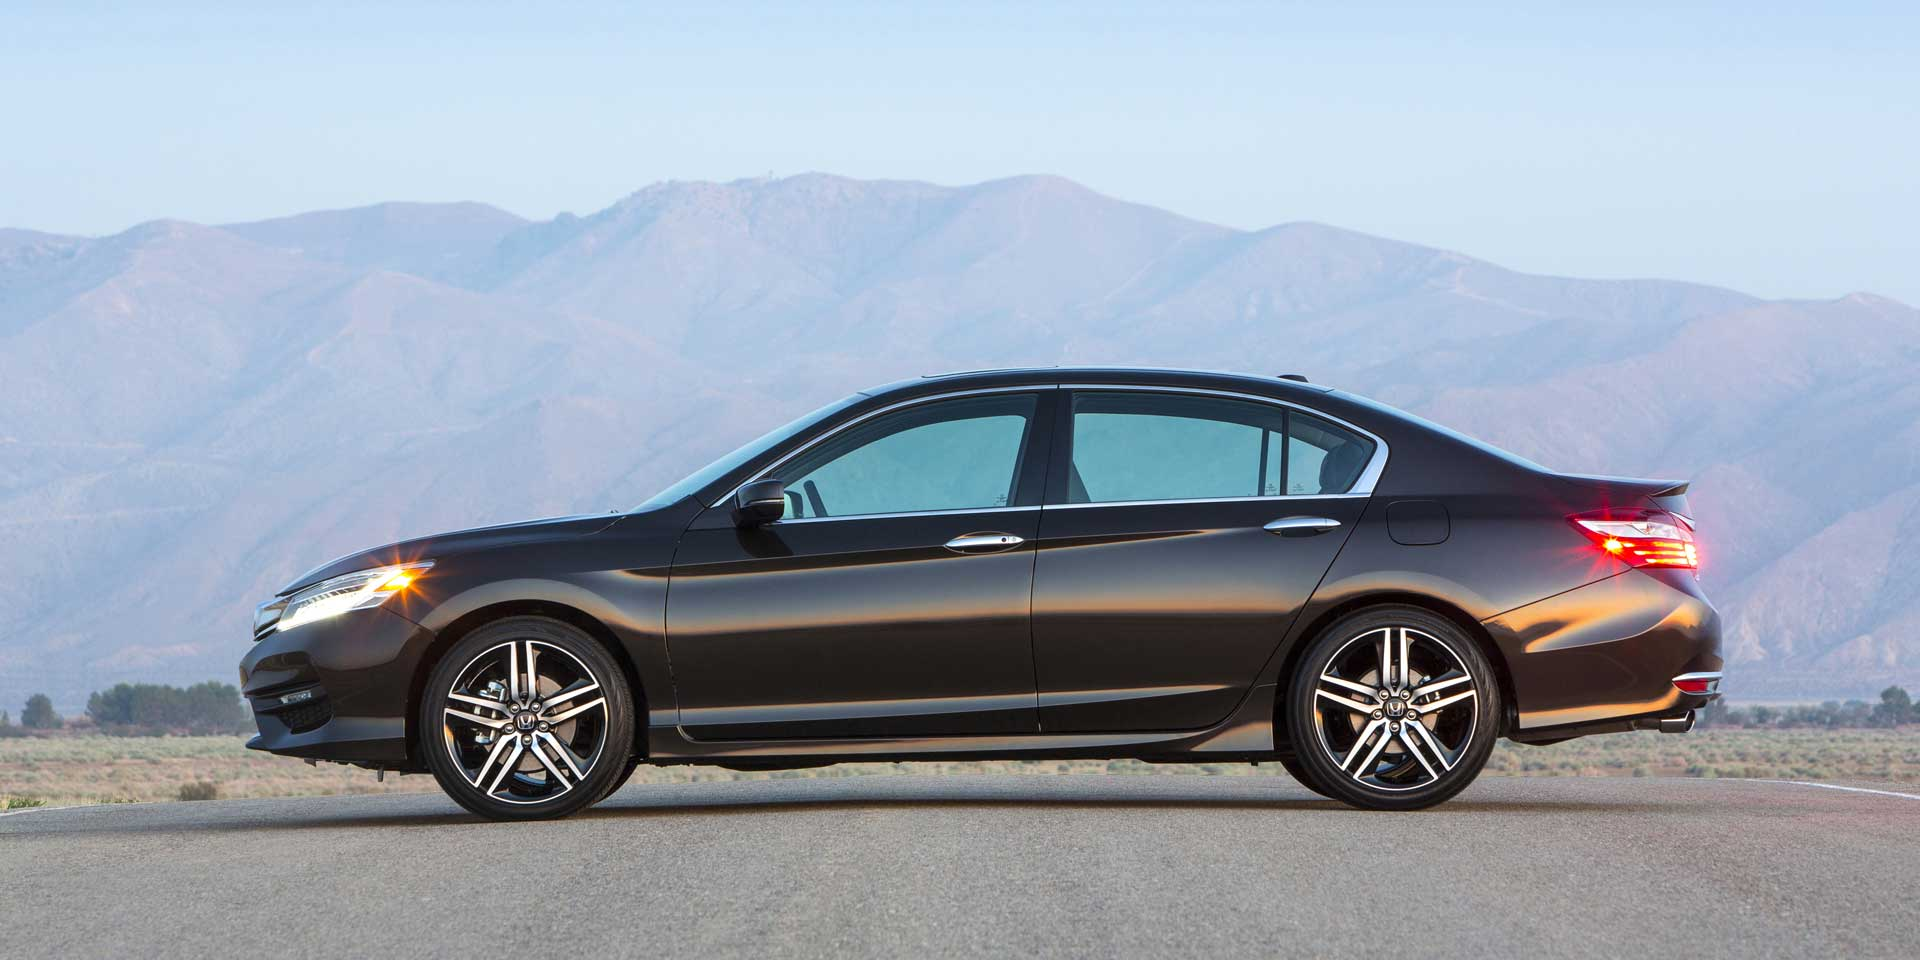 2017 Honda Accord The Is A Five Seat Mid Size Car That Available In Sedan Or Coupe Configurations Competes With Ford